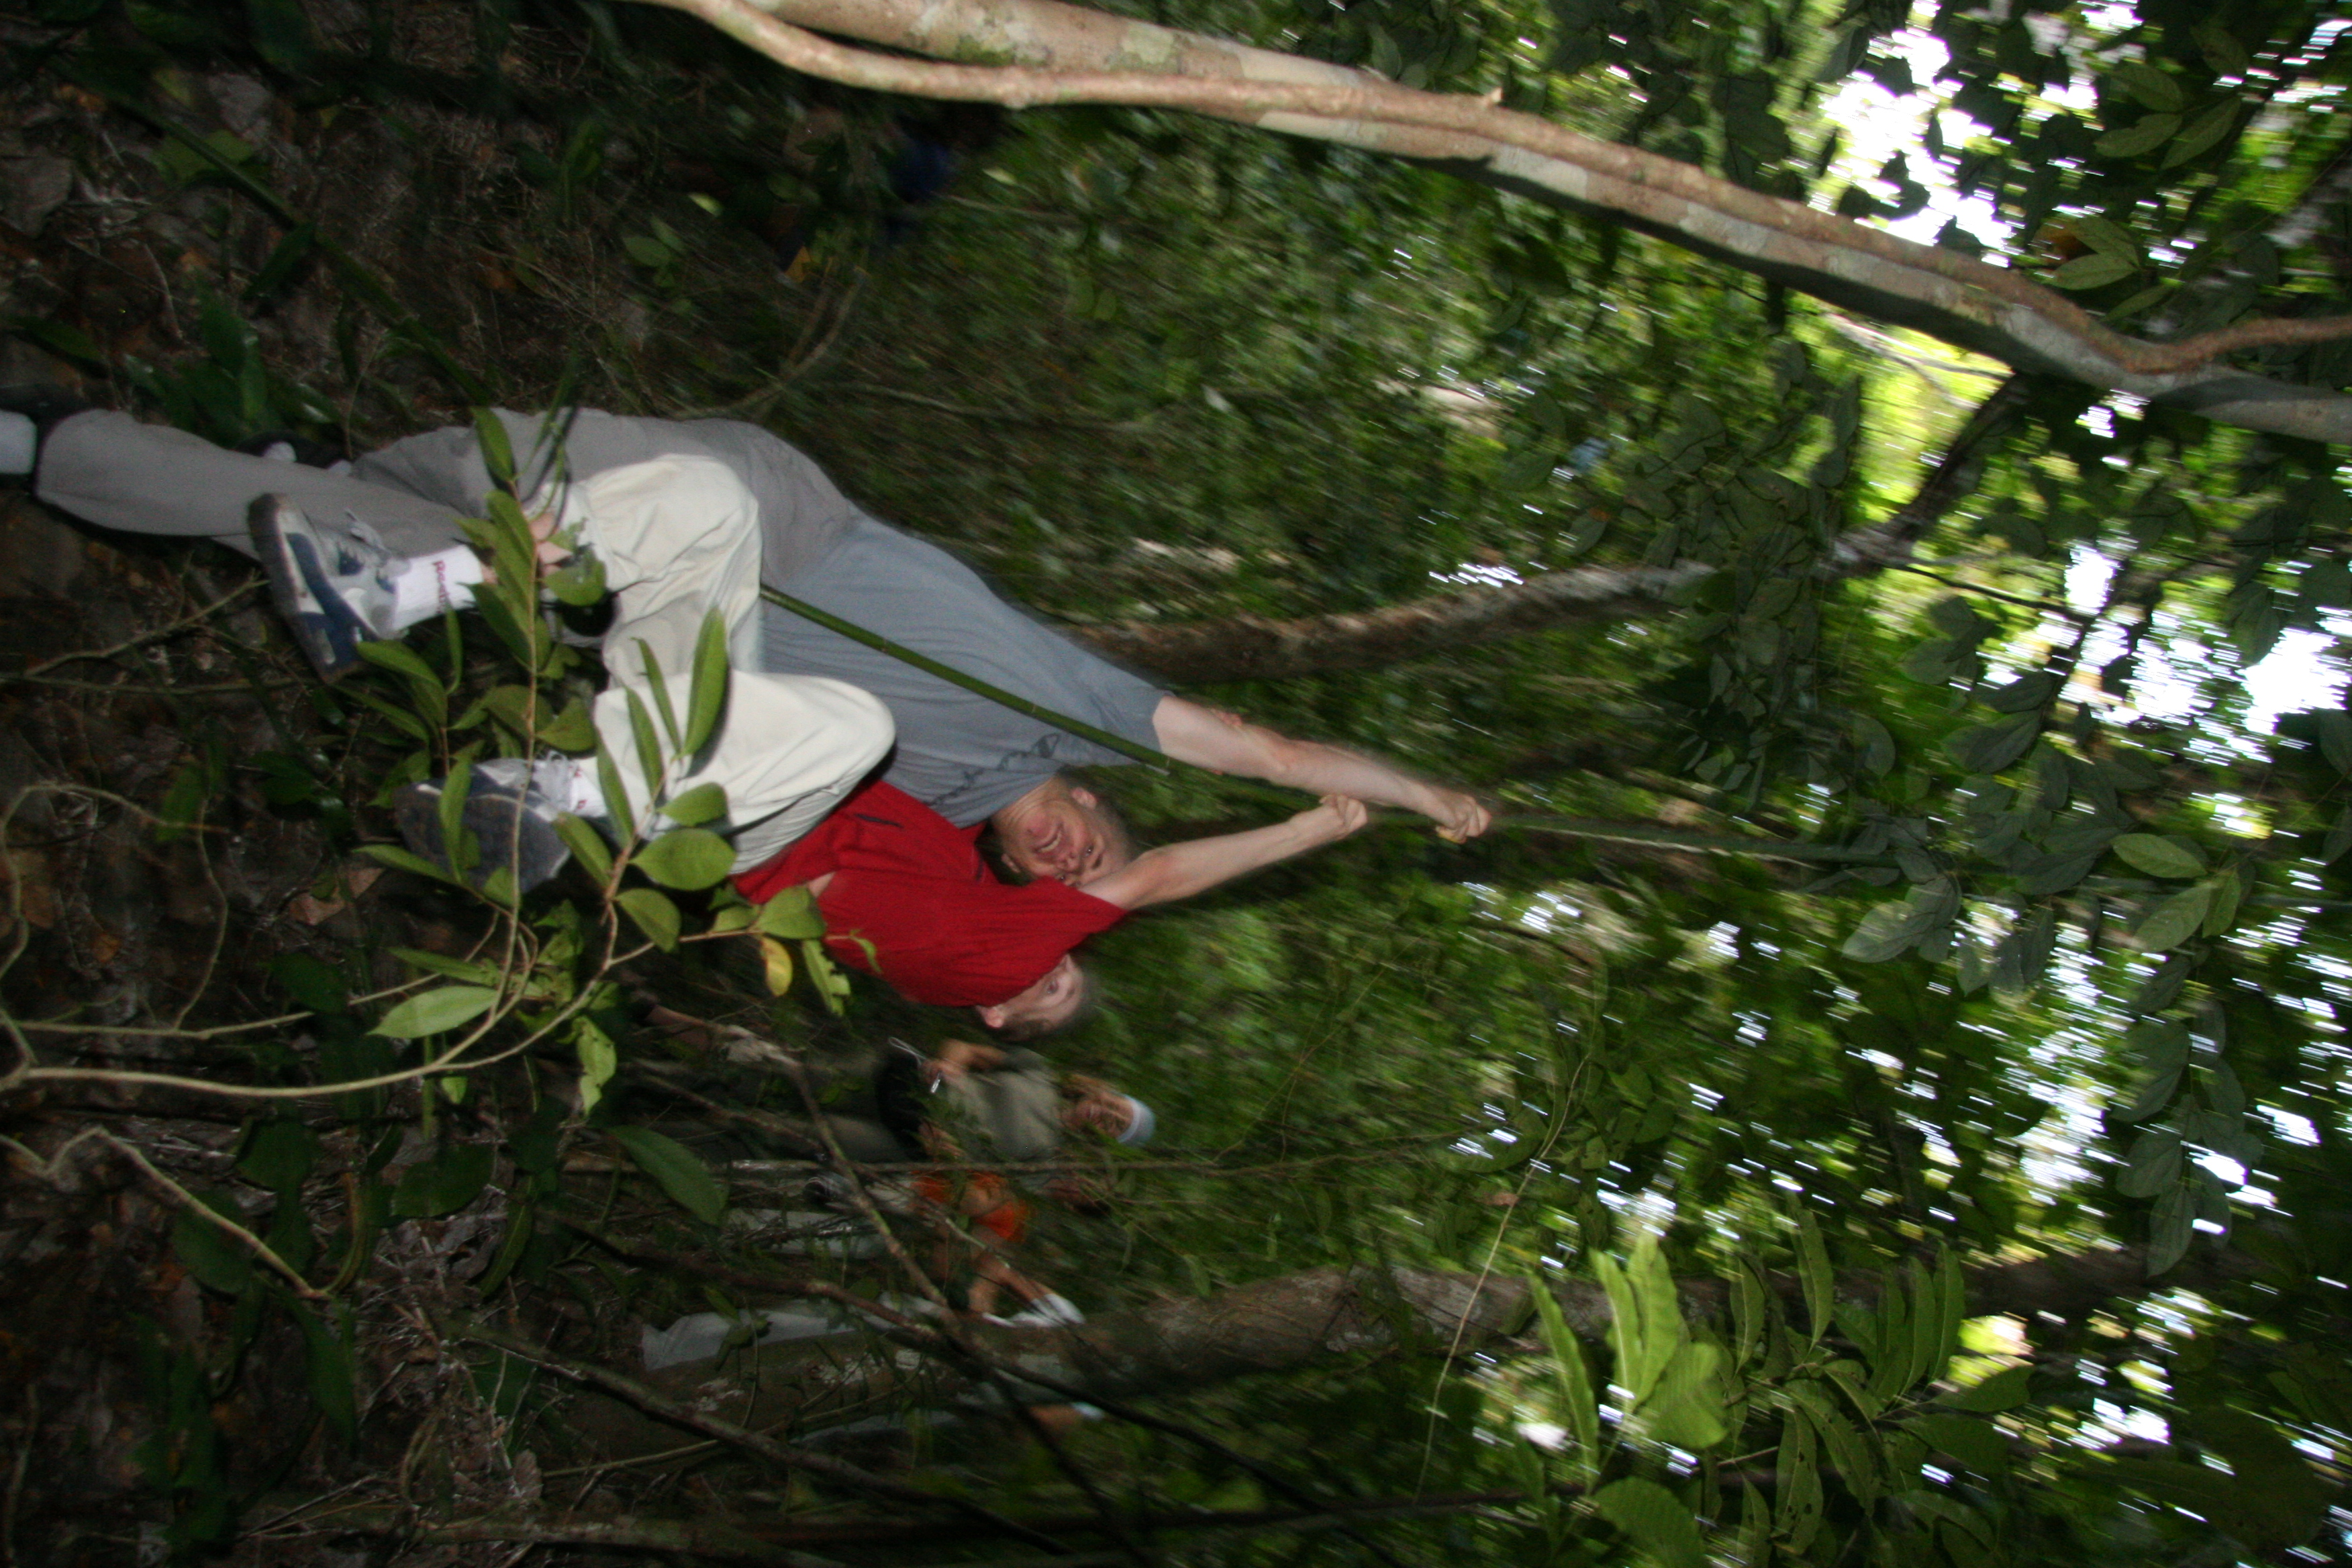 Penanjung nature reserve. Playing Tarzan on the vines, Java Pangandaran Indonesia 3.jpg - Indonesia Java Pangandaran. Penanjung nature reserve. Playing Tarzan on the vines